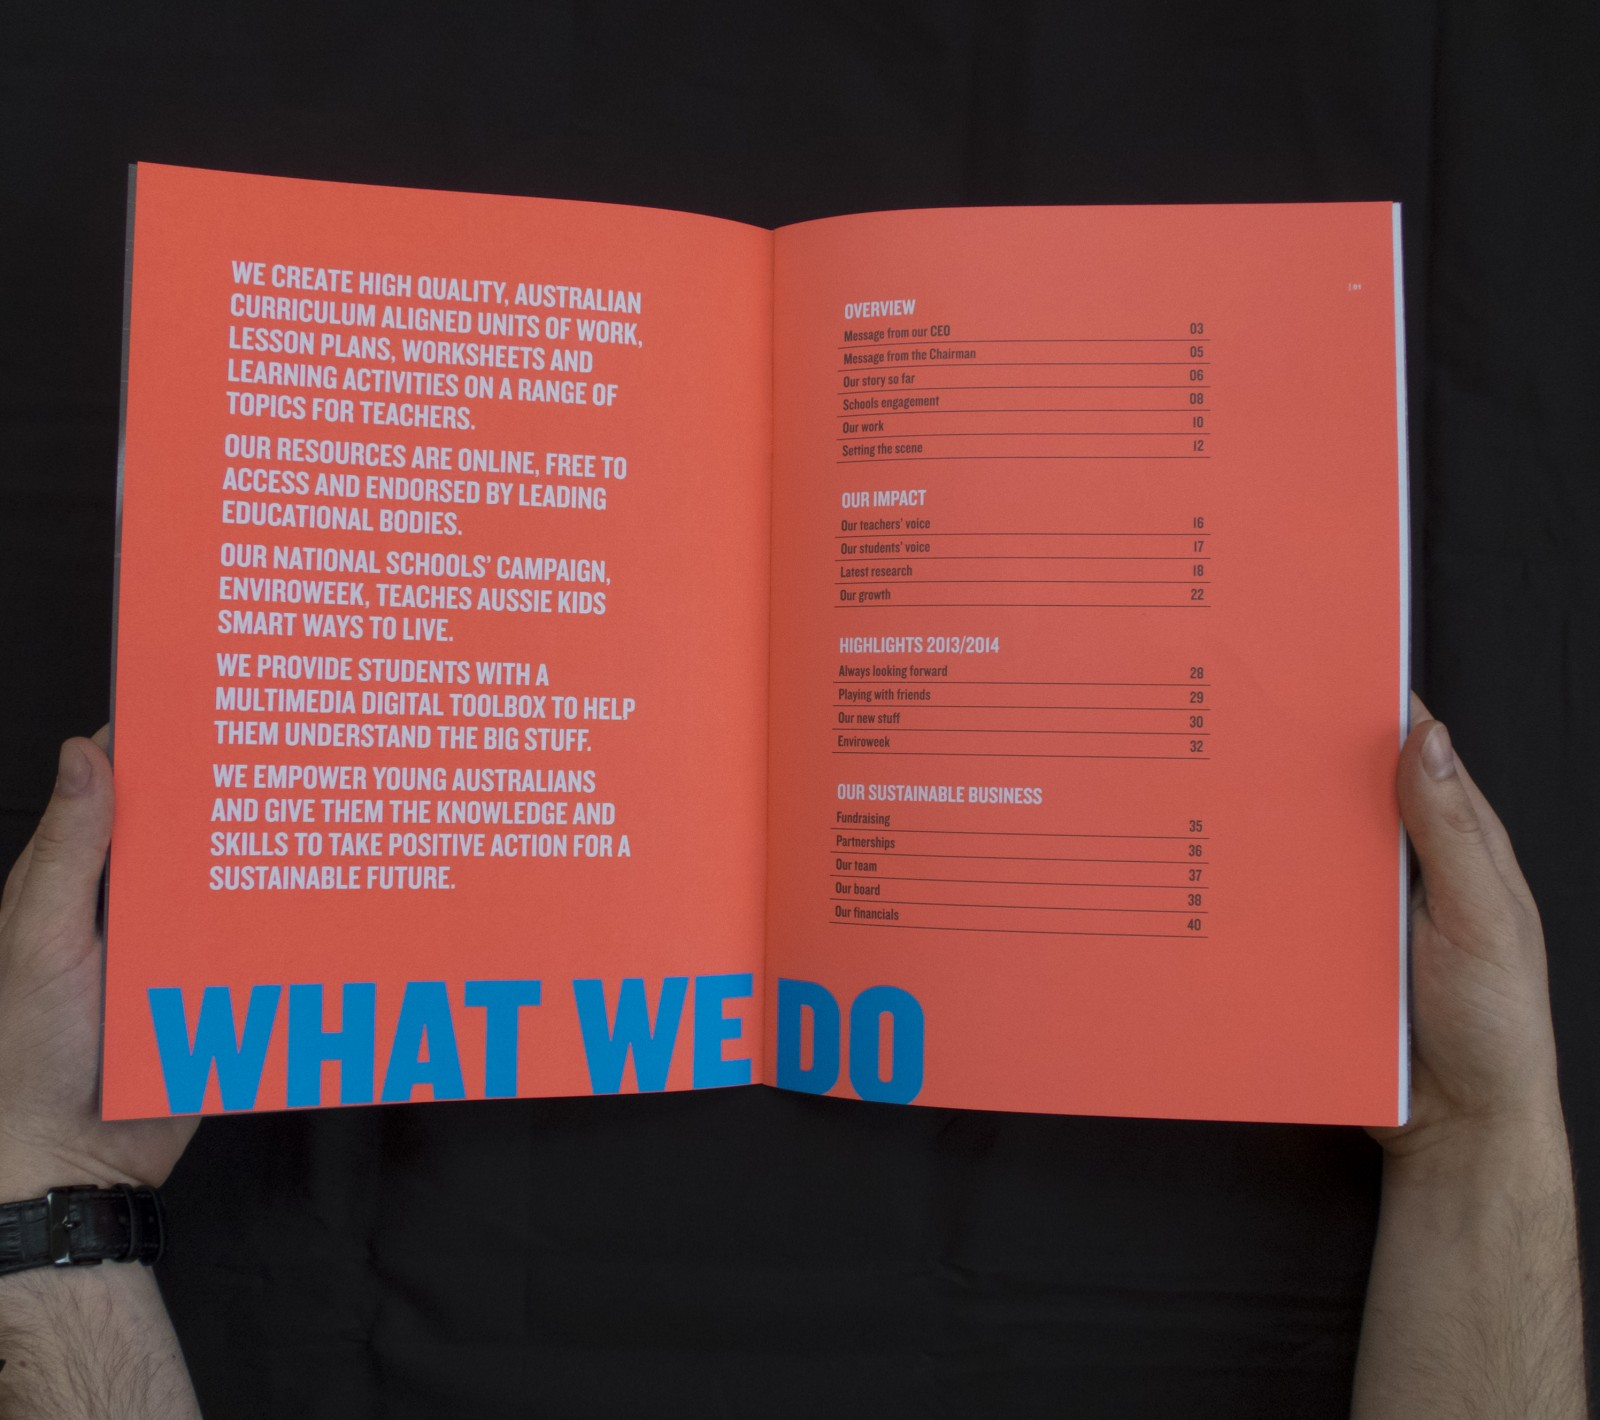 Cool Australia 2014 annual report table of contents